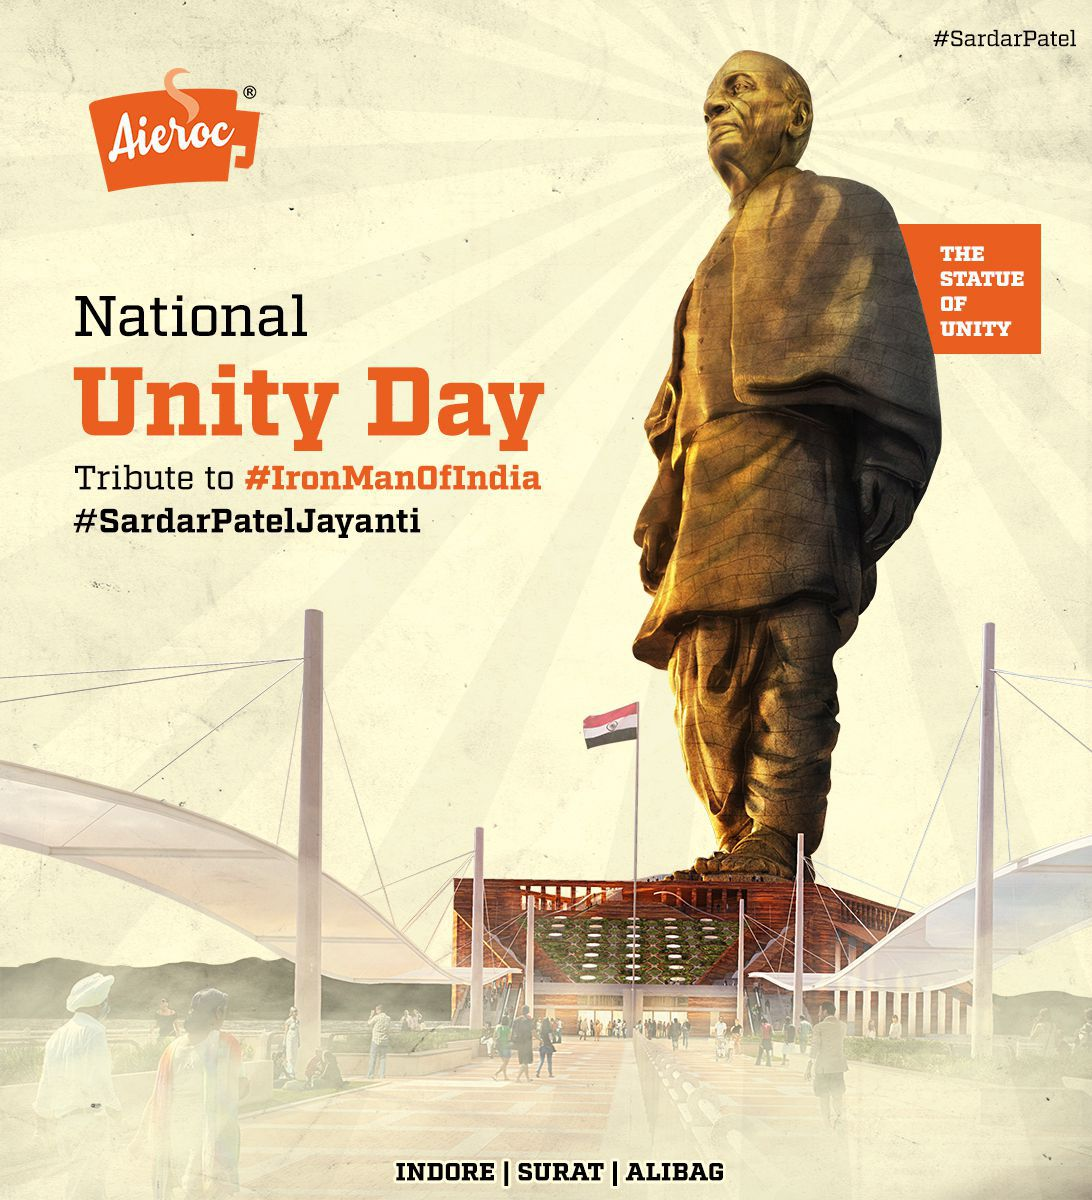 Sardar Patel - The Statue Of Unity